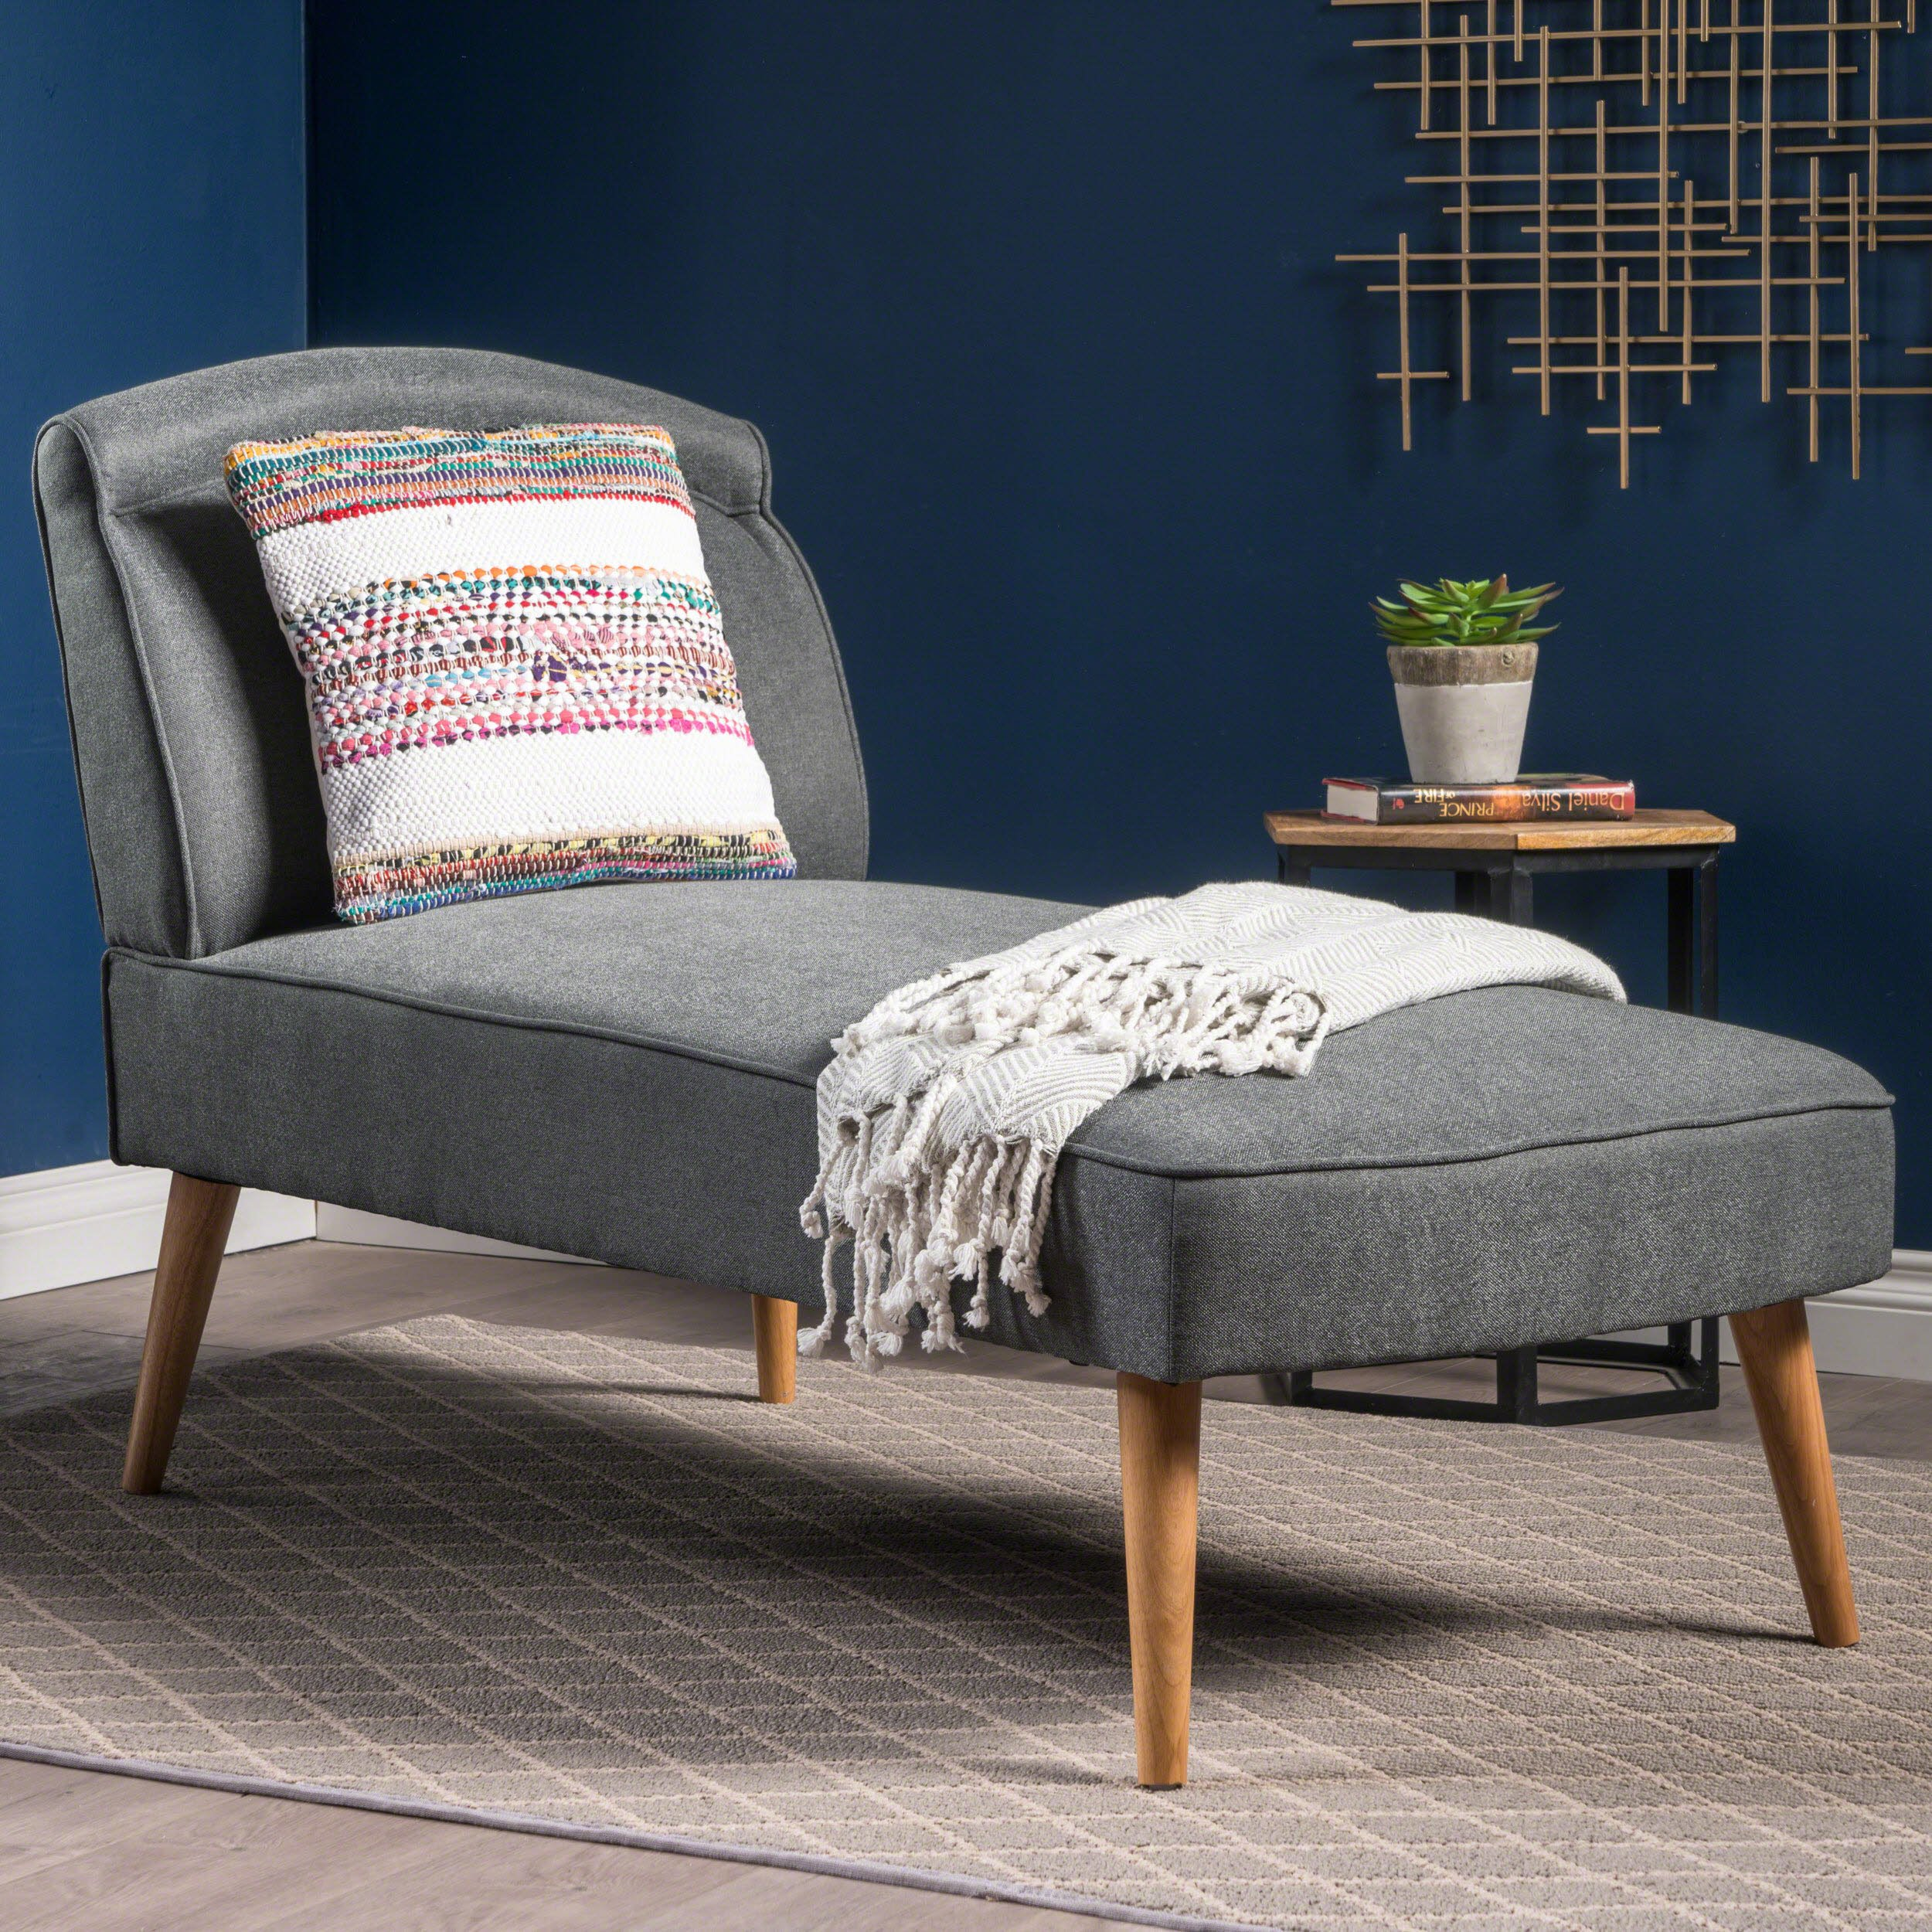 Jolie Mid Century Modern Slate Grey Fabric Chaise Lounge by Christopher Knight Home